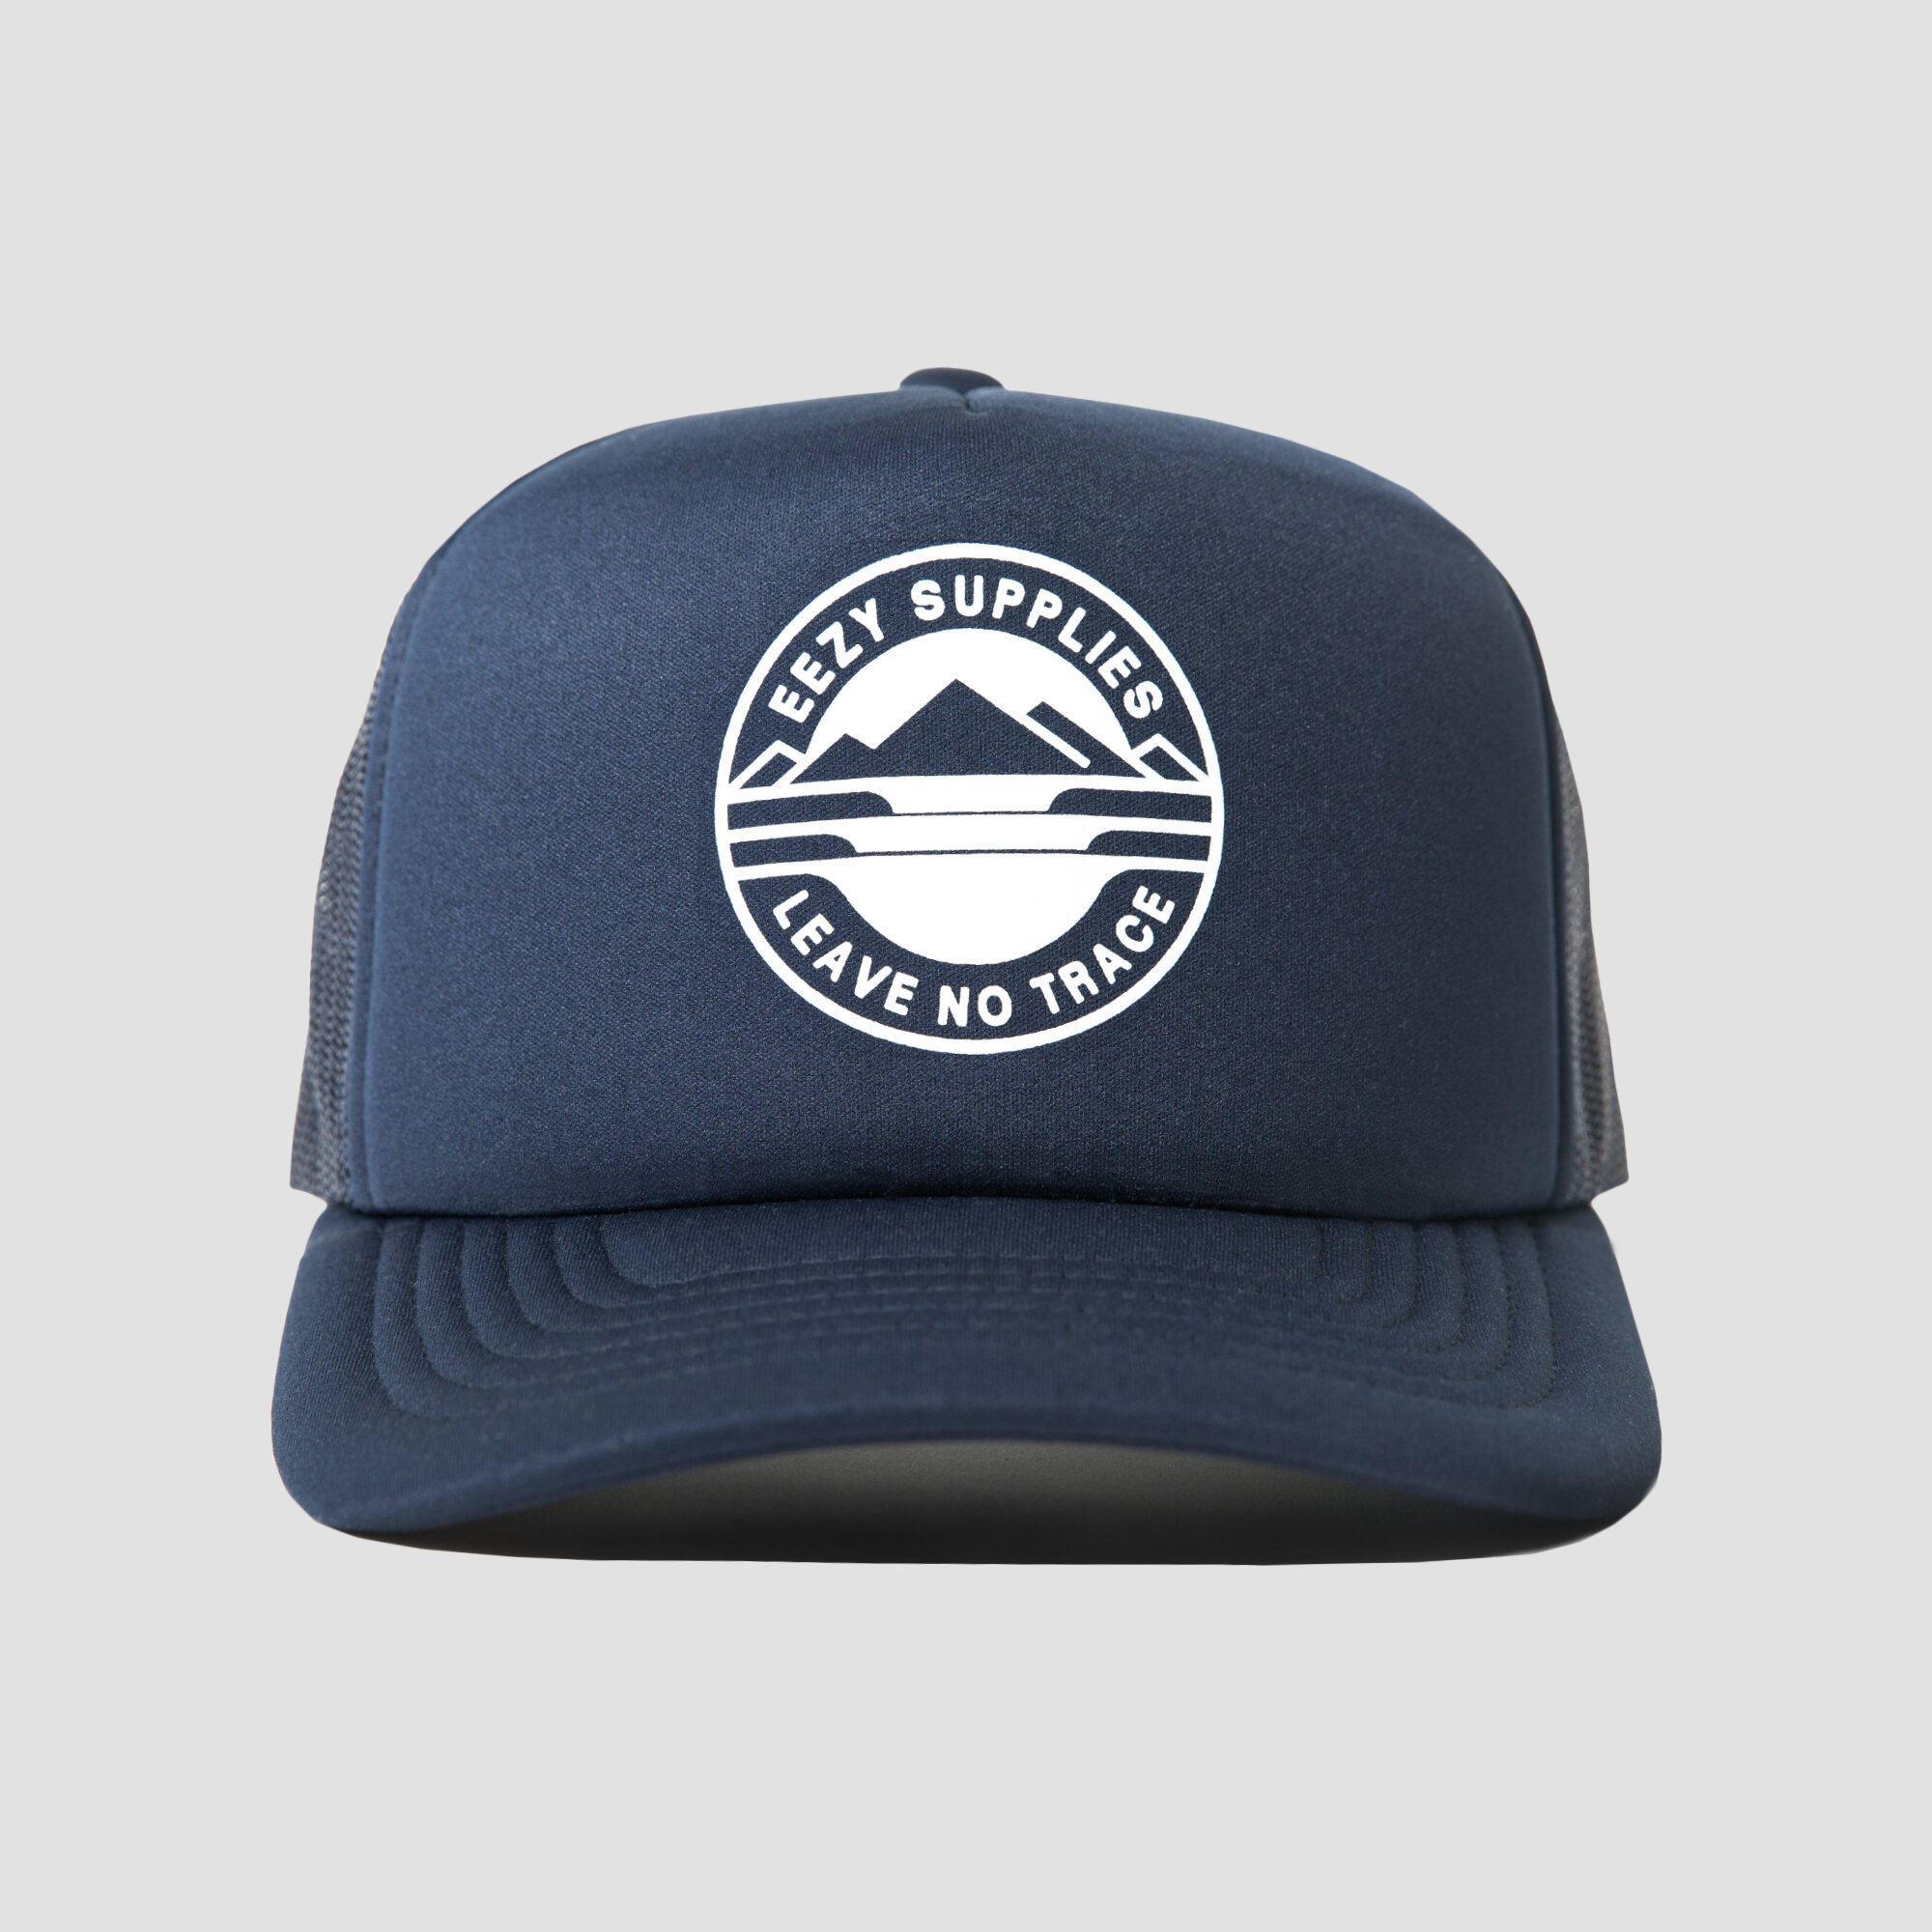 Recreation - Navy - $22.95